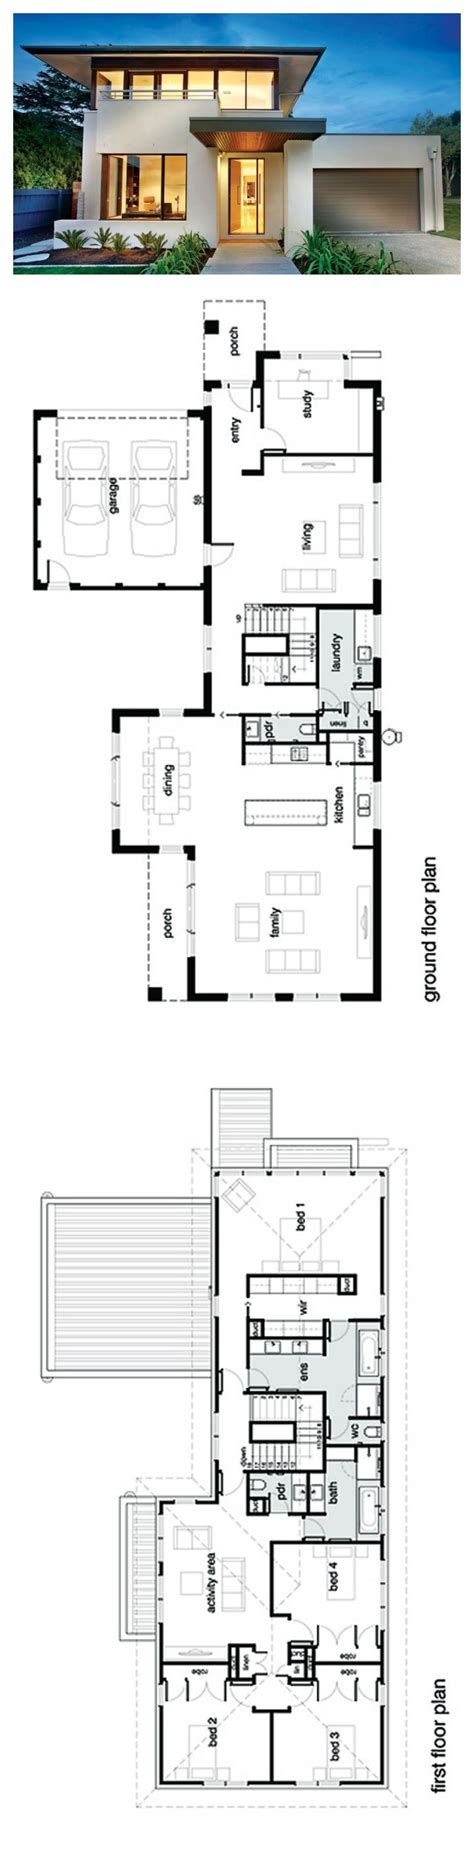 2 storey modern house designs and floor plans tips modern house plan the 25 best ideas about modern house plans on pinterest